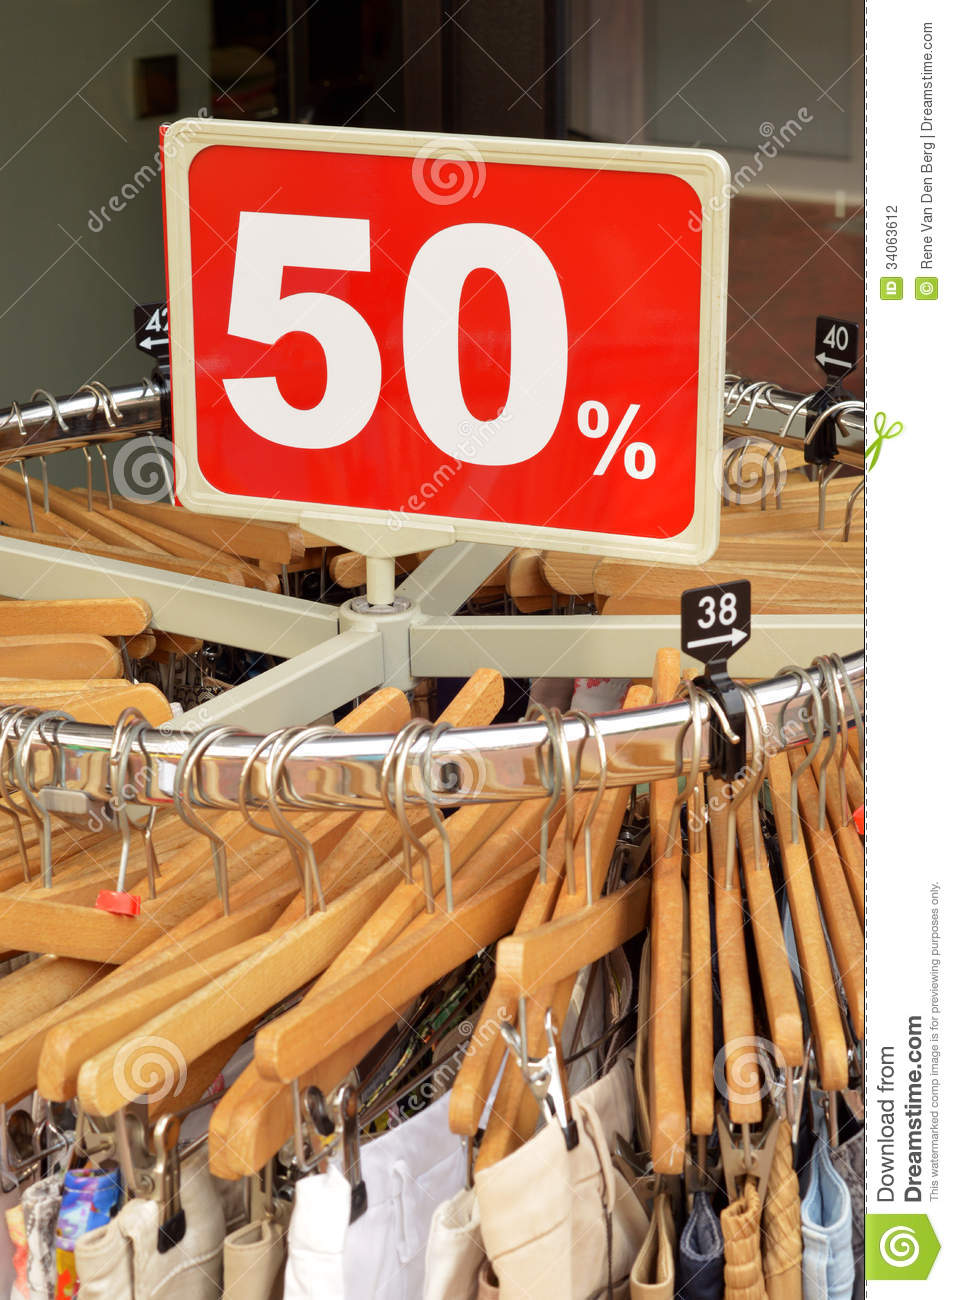 Sale in a clothing store - 50% discount sign at a clothes rack